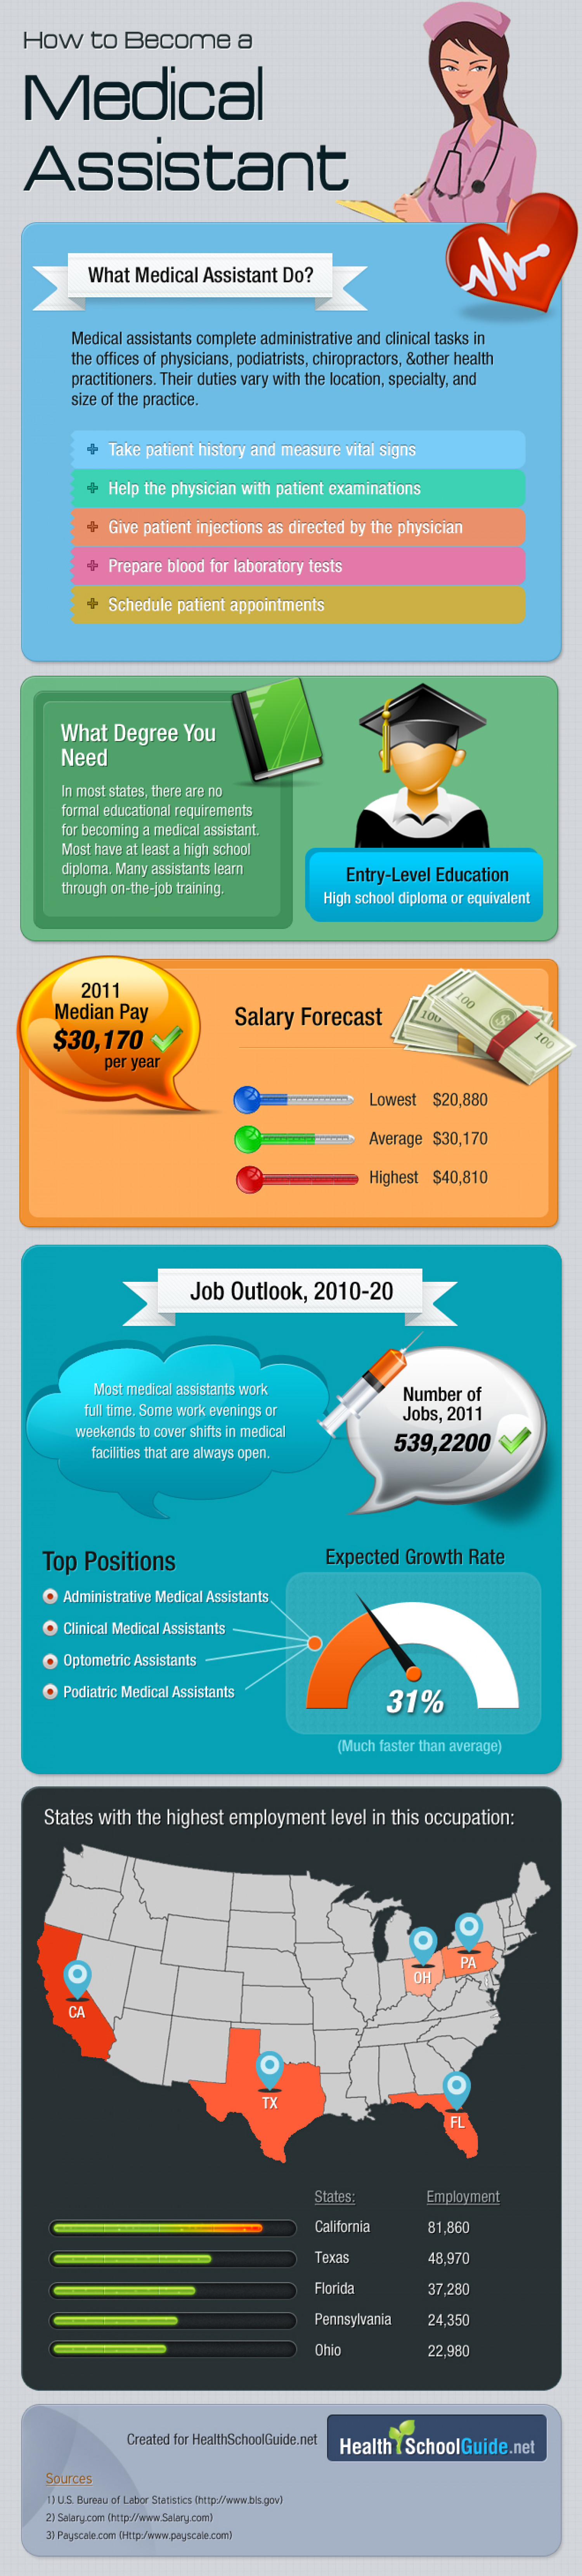 How to Become a Medical Assistant Infographic